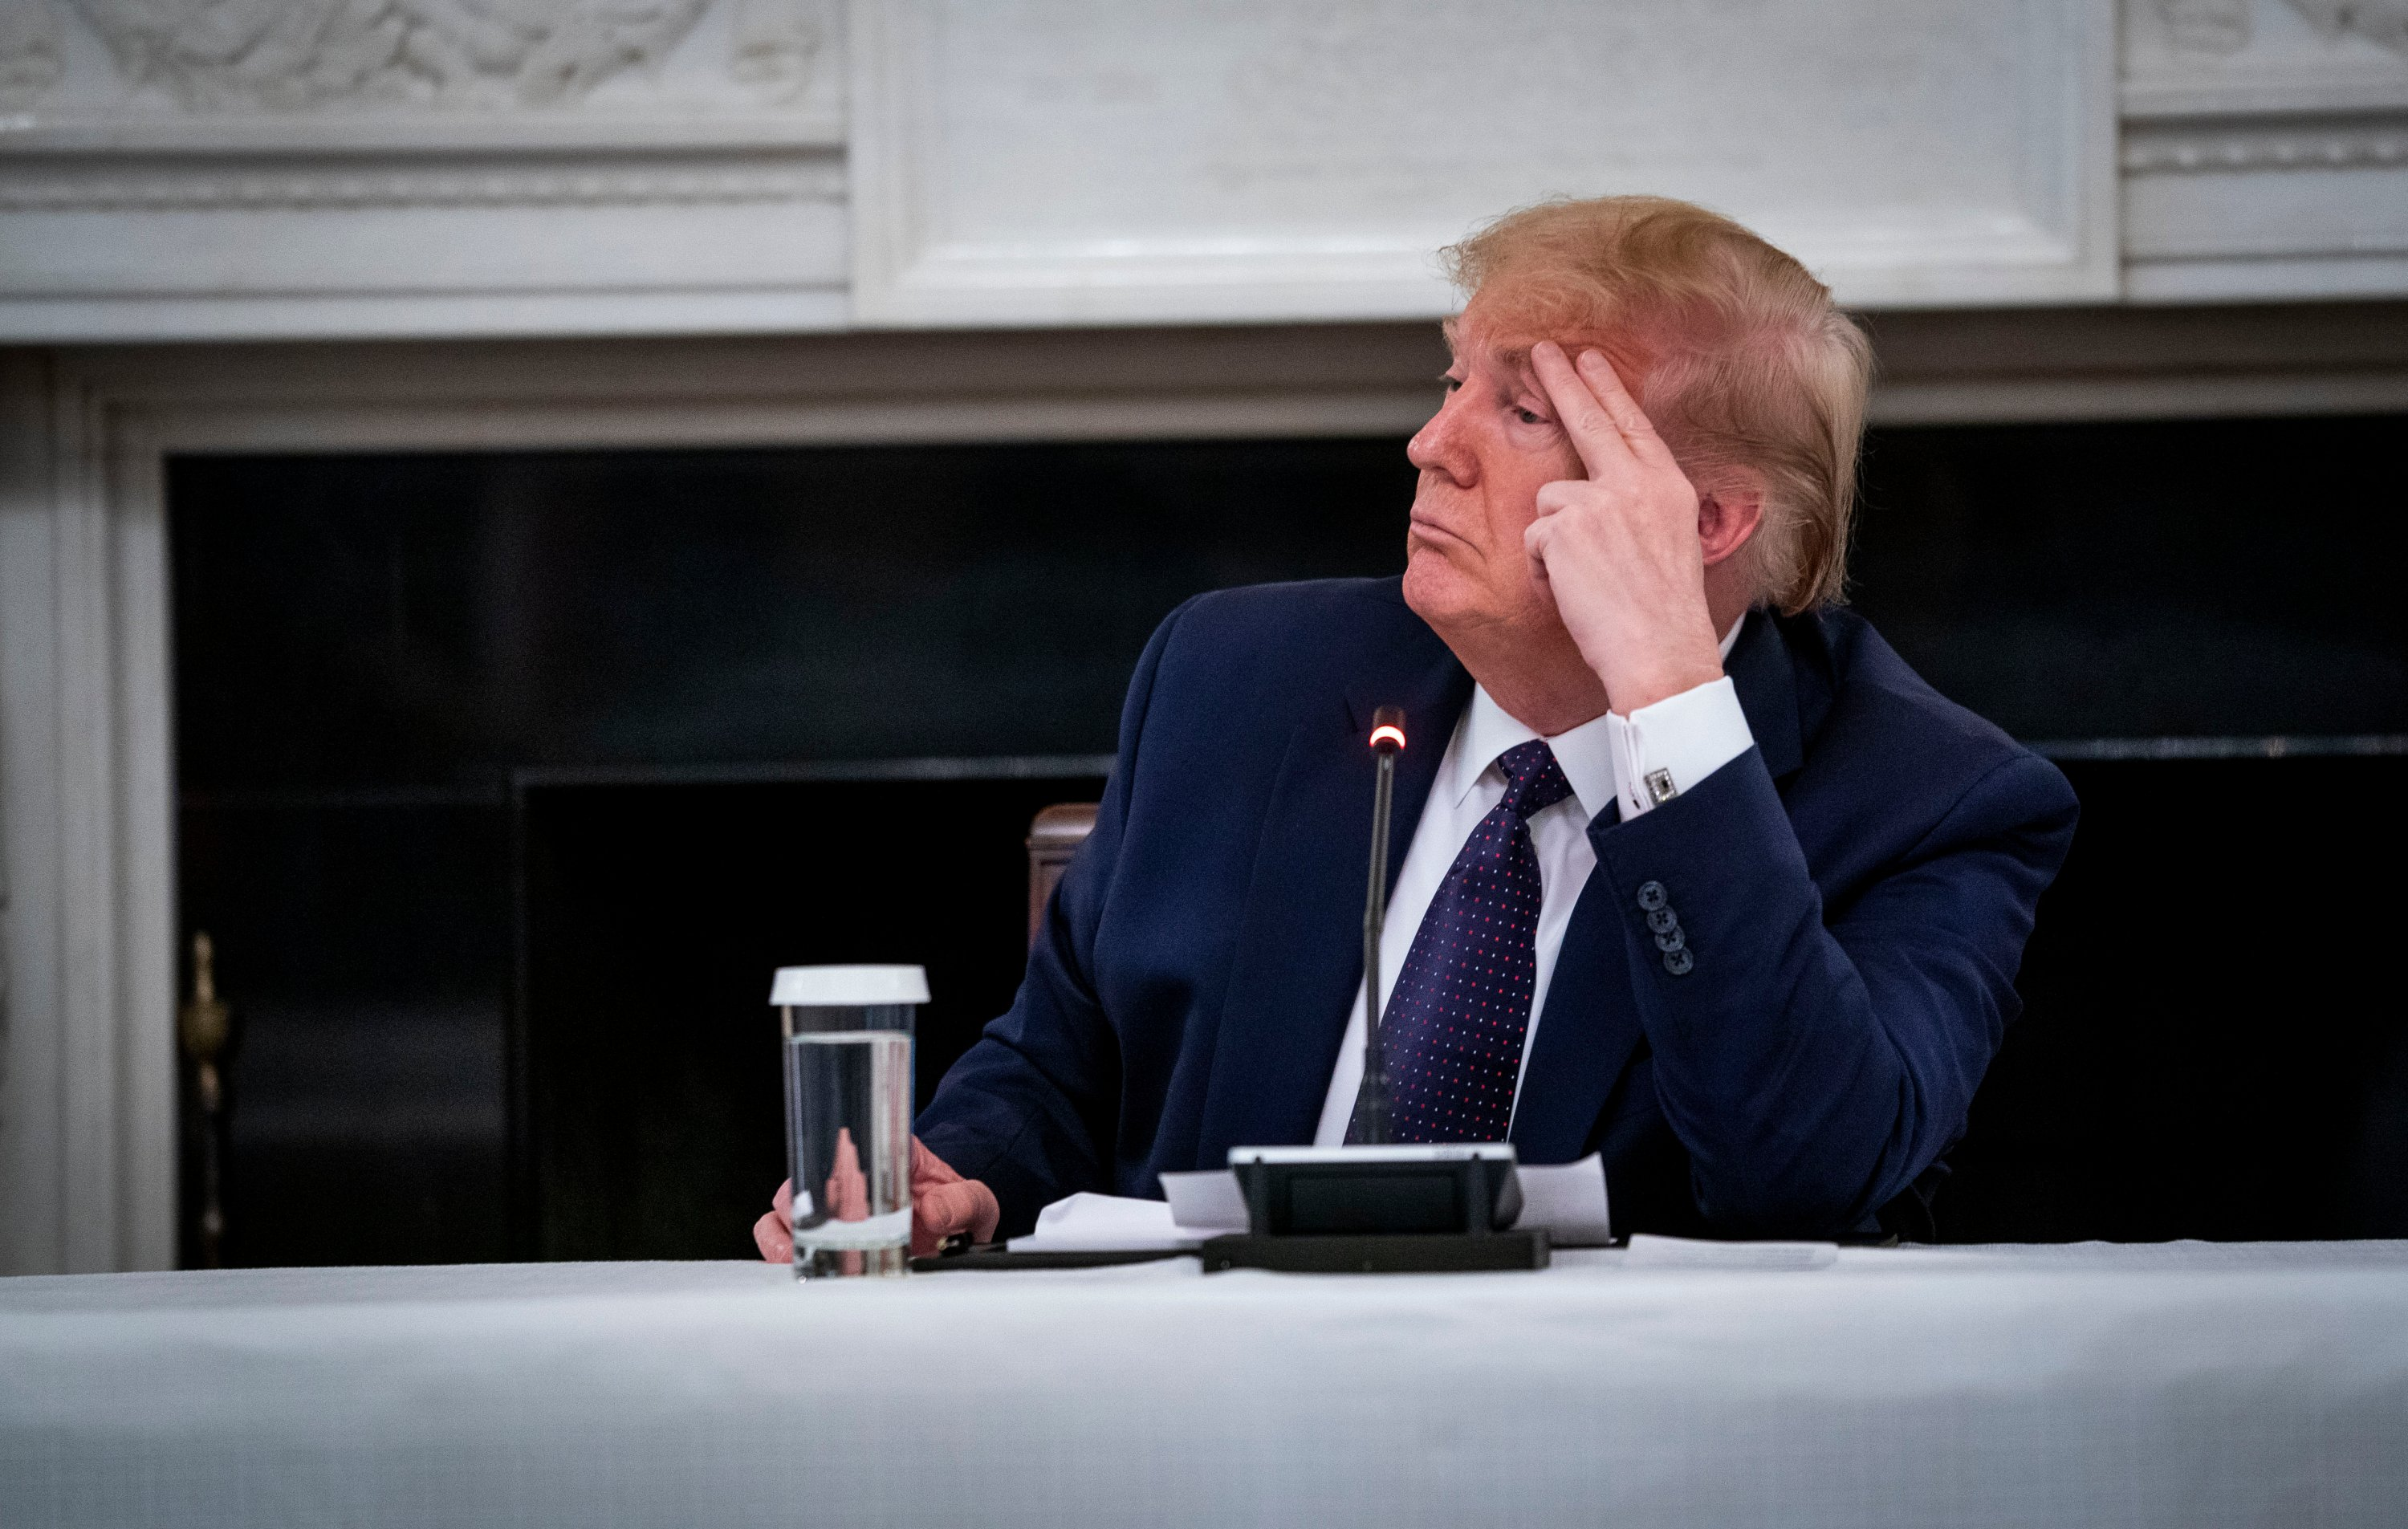 Donald Trump reveals that he is taking Hydroxychloroquine prophylaxis against COVID-19 as he participates in a roundtable with Restaurant Executives and Industry Leaders in the State Dining Room, Monday, May 18, 2020. (Reuters Photo)